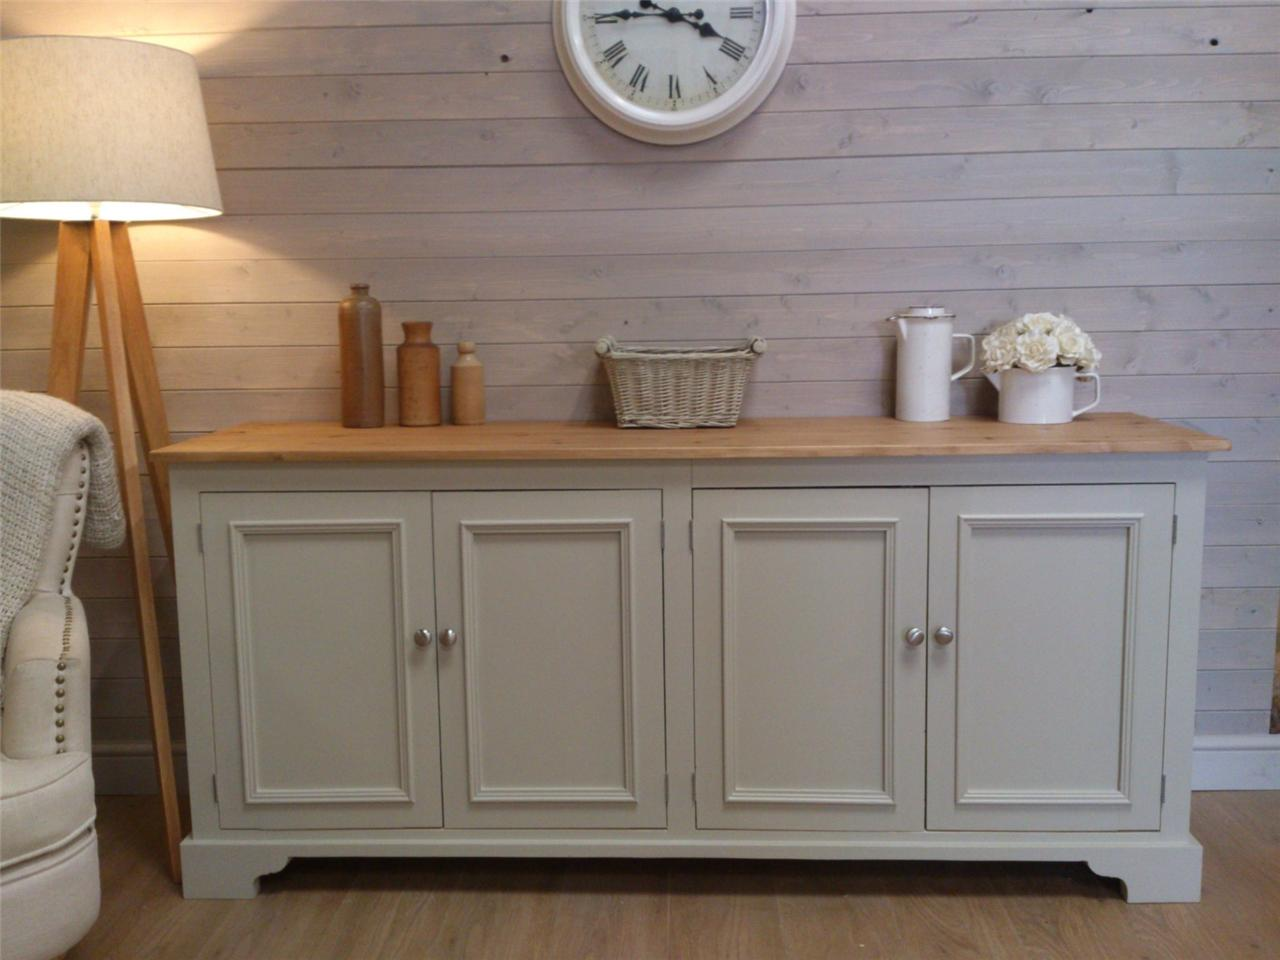 Solid Pine Sideboard Kitchen Unit Shabby Chic Painted Furniture F&Ball #986B33 1280 960 Sala Da Pranzo Scavolini